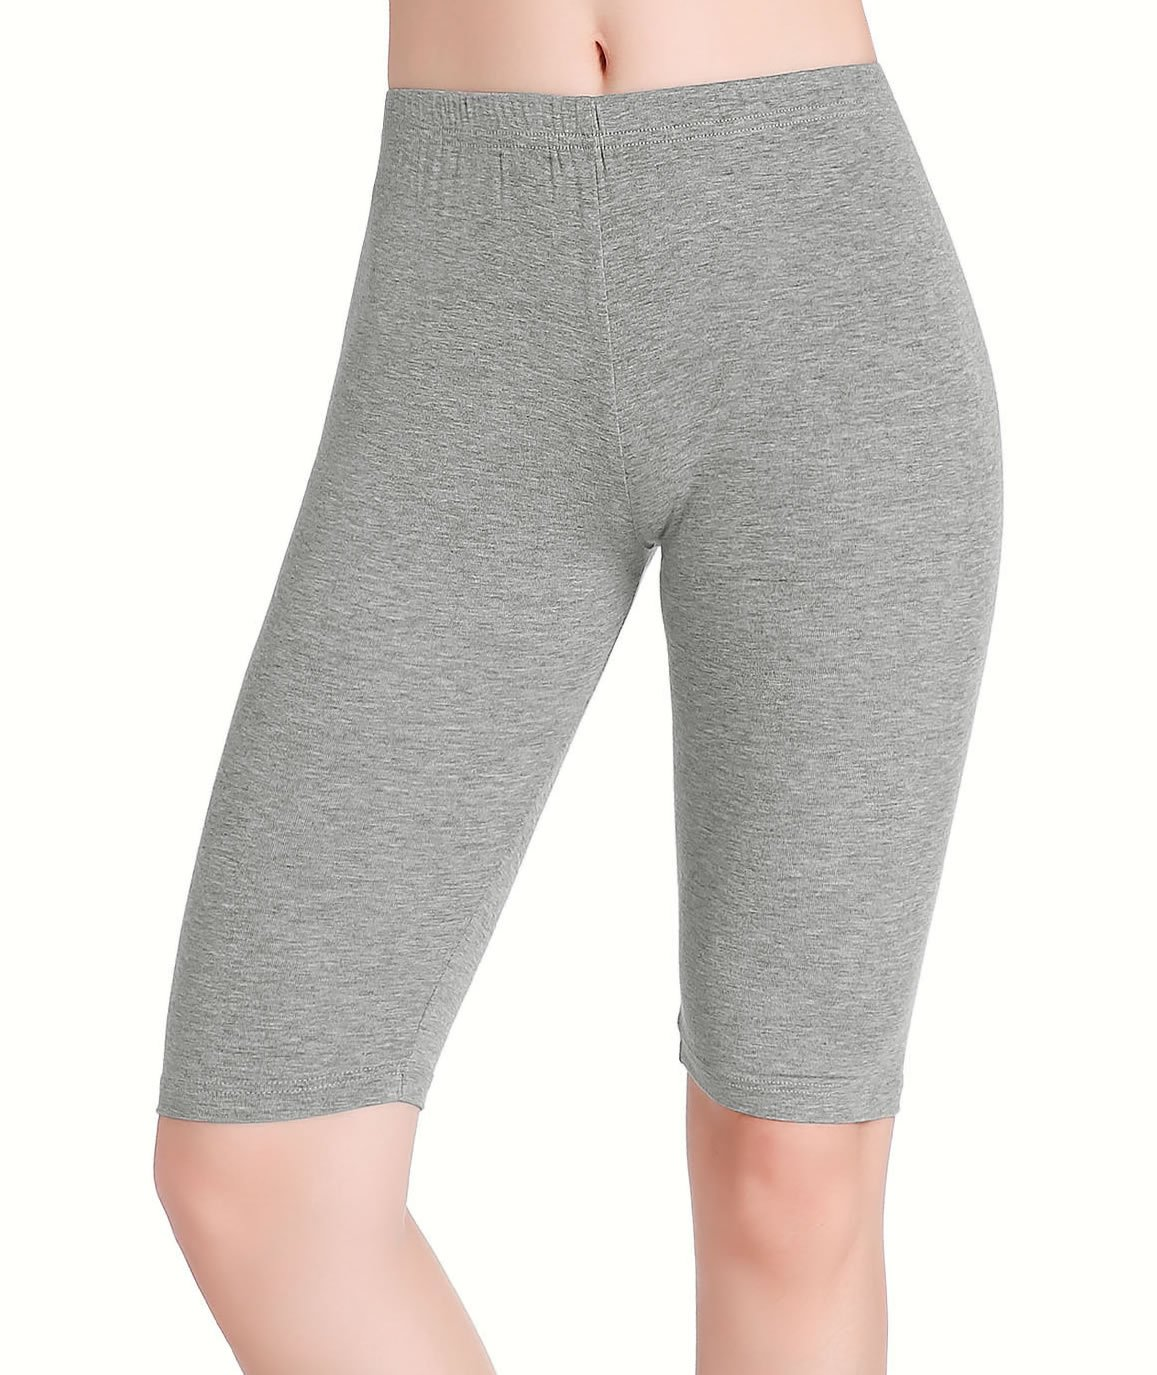 CnlanRow Womens Under Skirt Pants Soft Ultra Stretch Knee Length Leggings Fitness Sport Shorts,Medium,Light Gray by CnlanRow (Image #3)